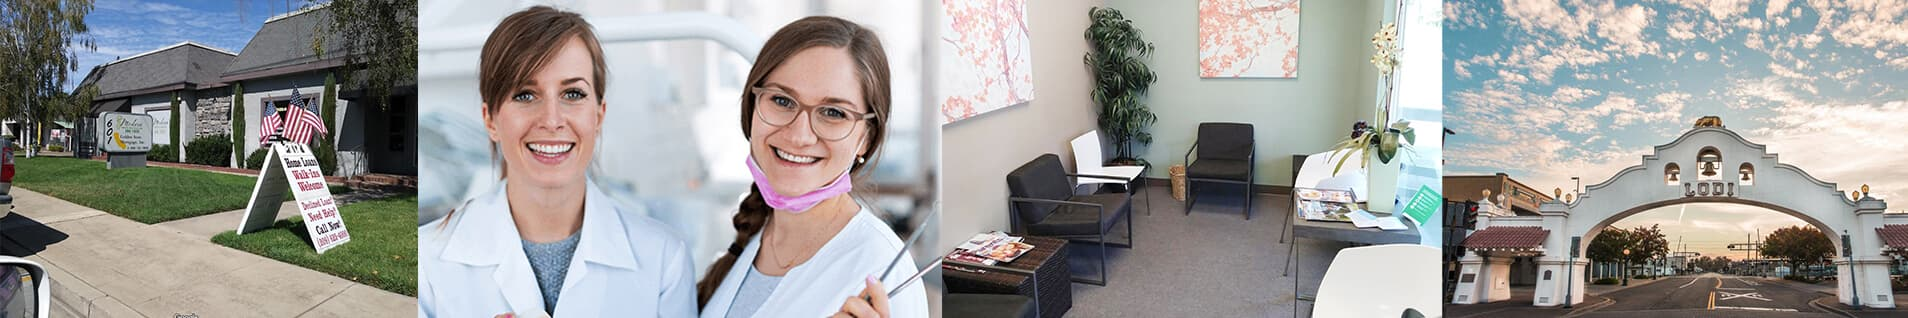 Modern Dental & Implants Office Collage Photo